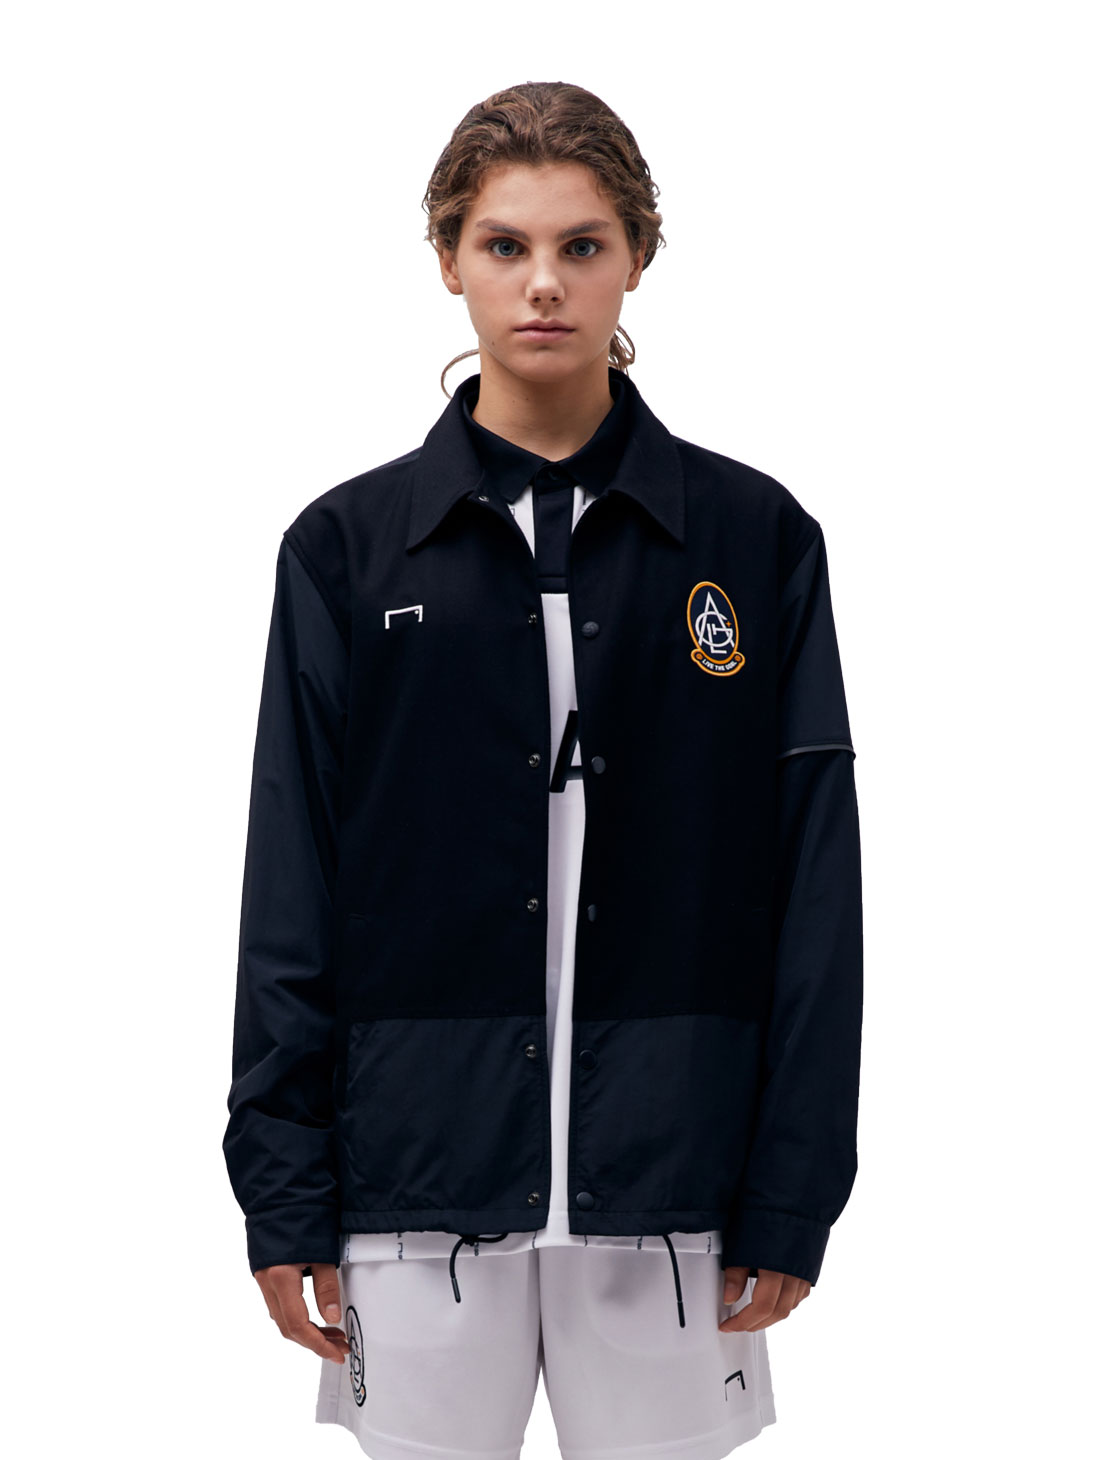 GOALSTUDIO EMBLEM COACH JACKET - BLACK